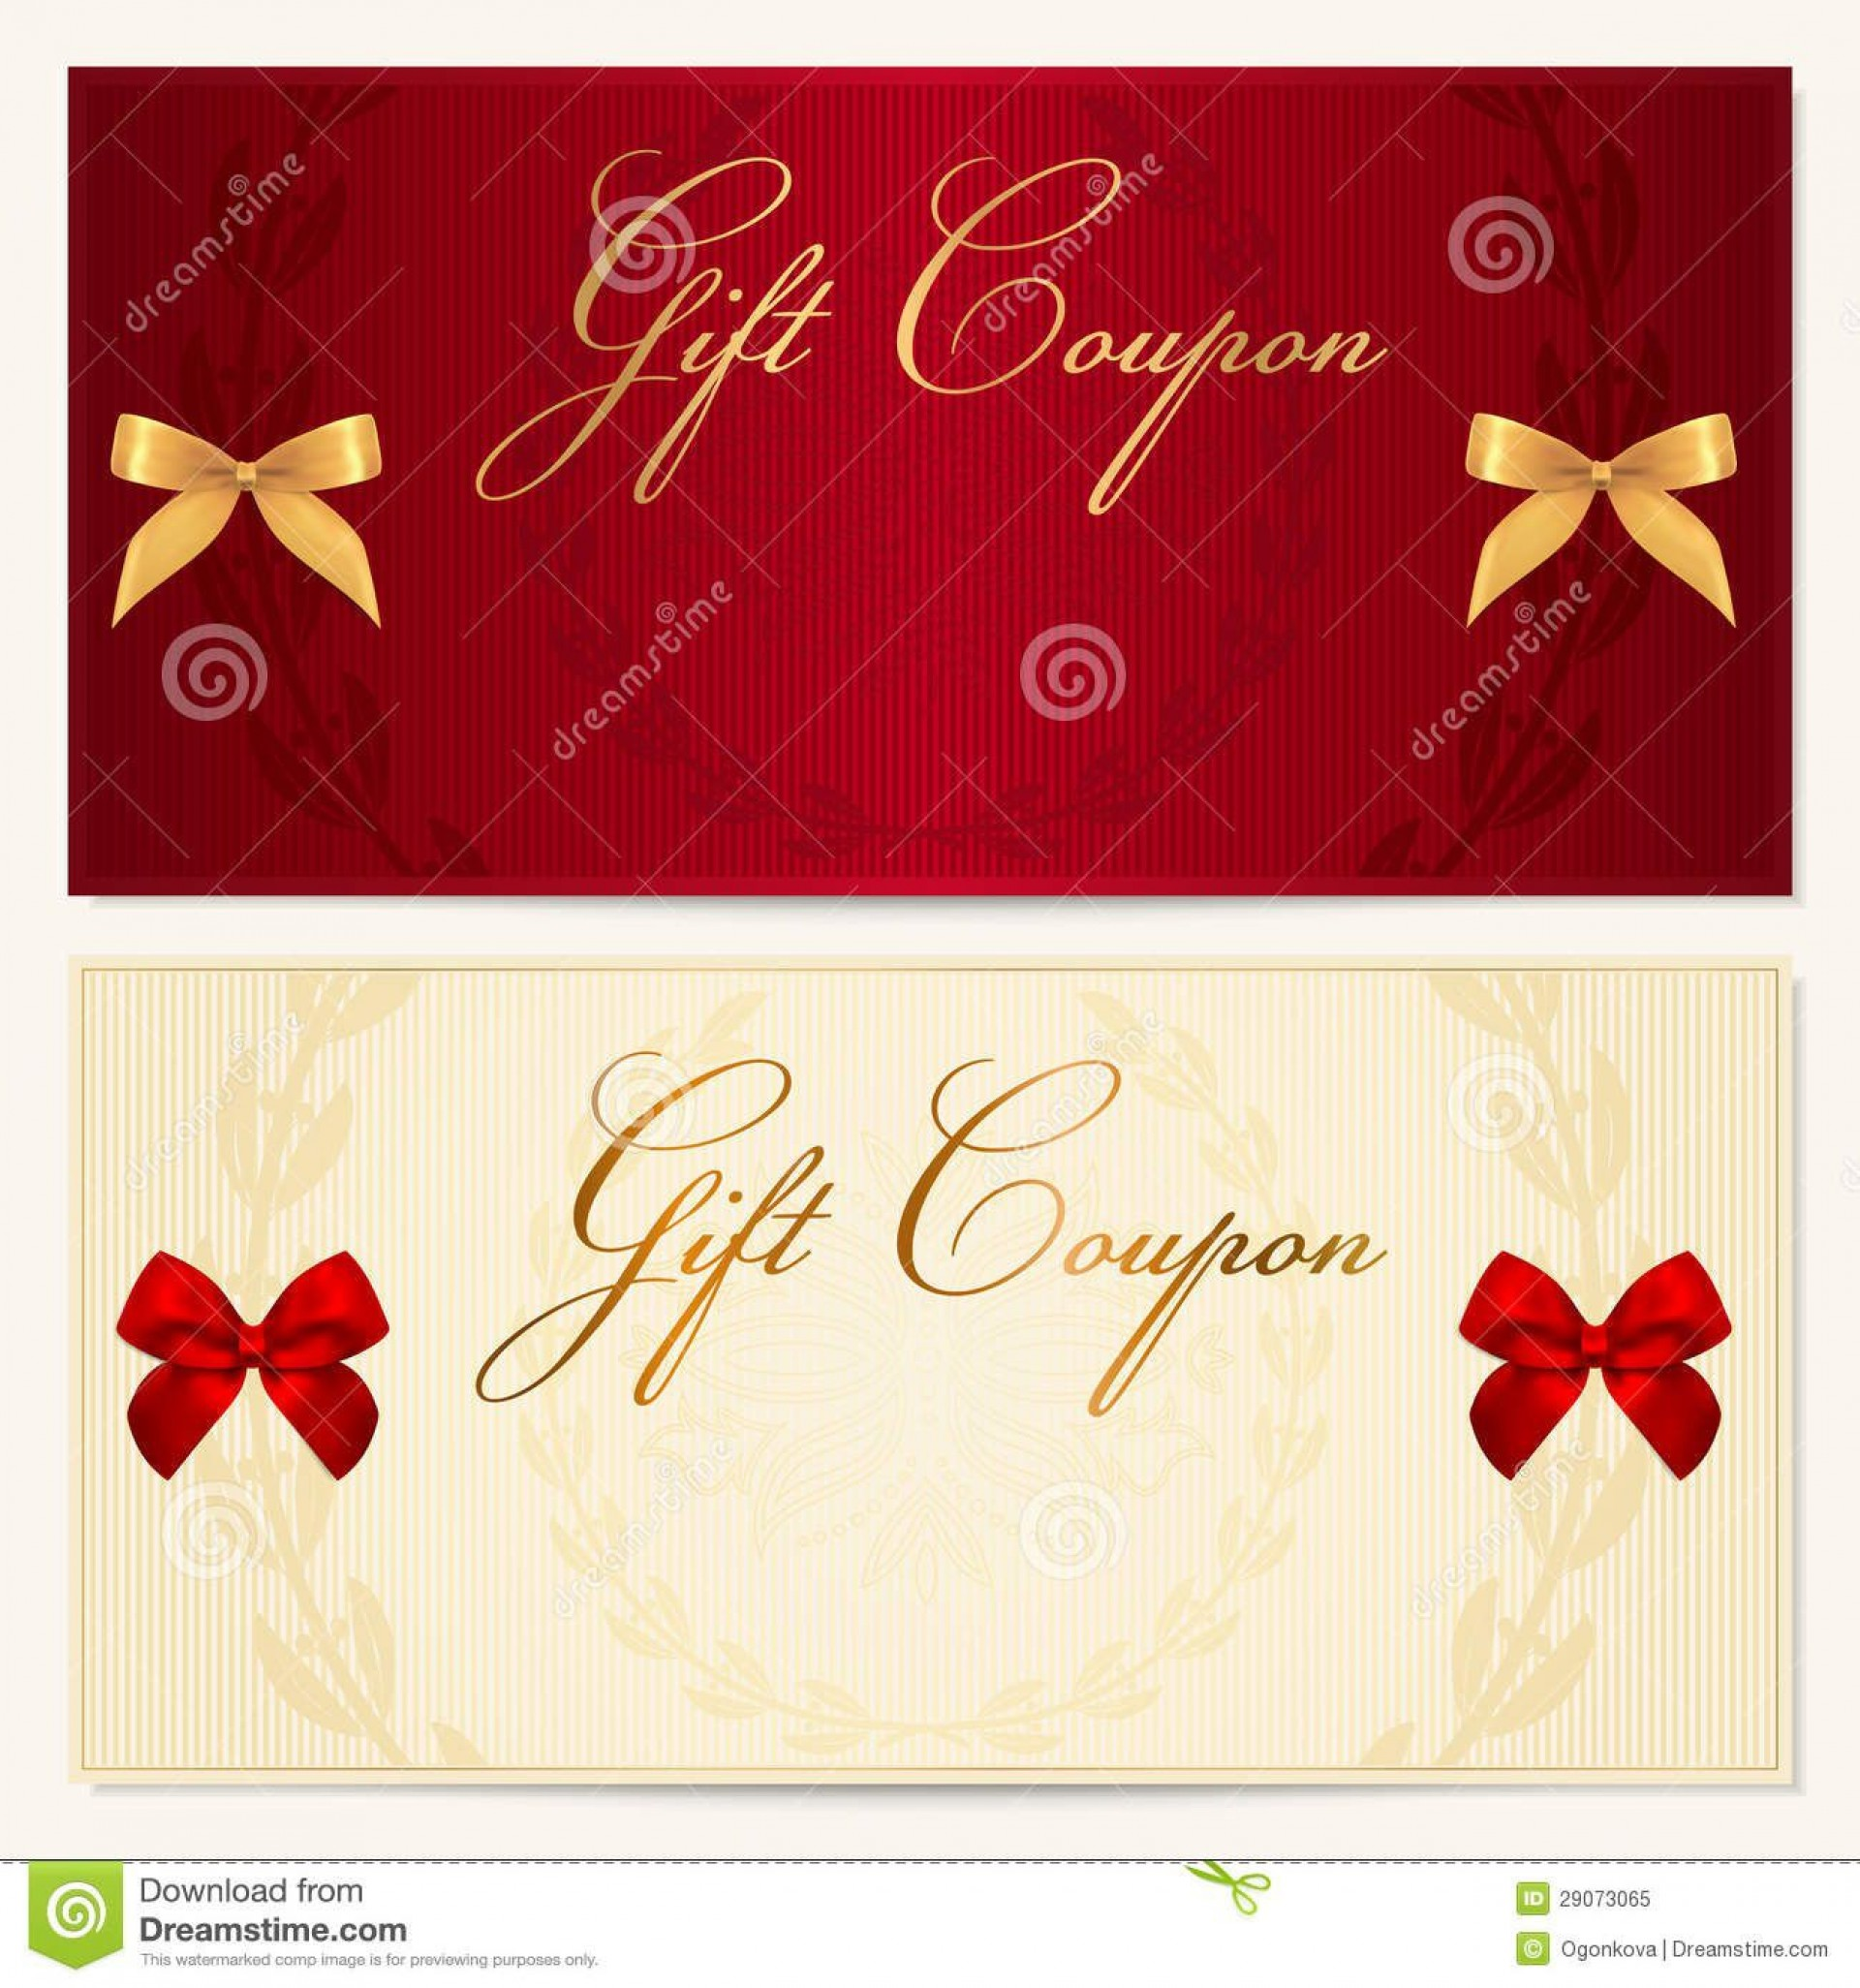 007 Formidable Free Printable Christma Gift Voucher Template Photo  Templates Holiday Certificate1920